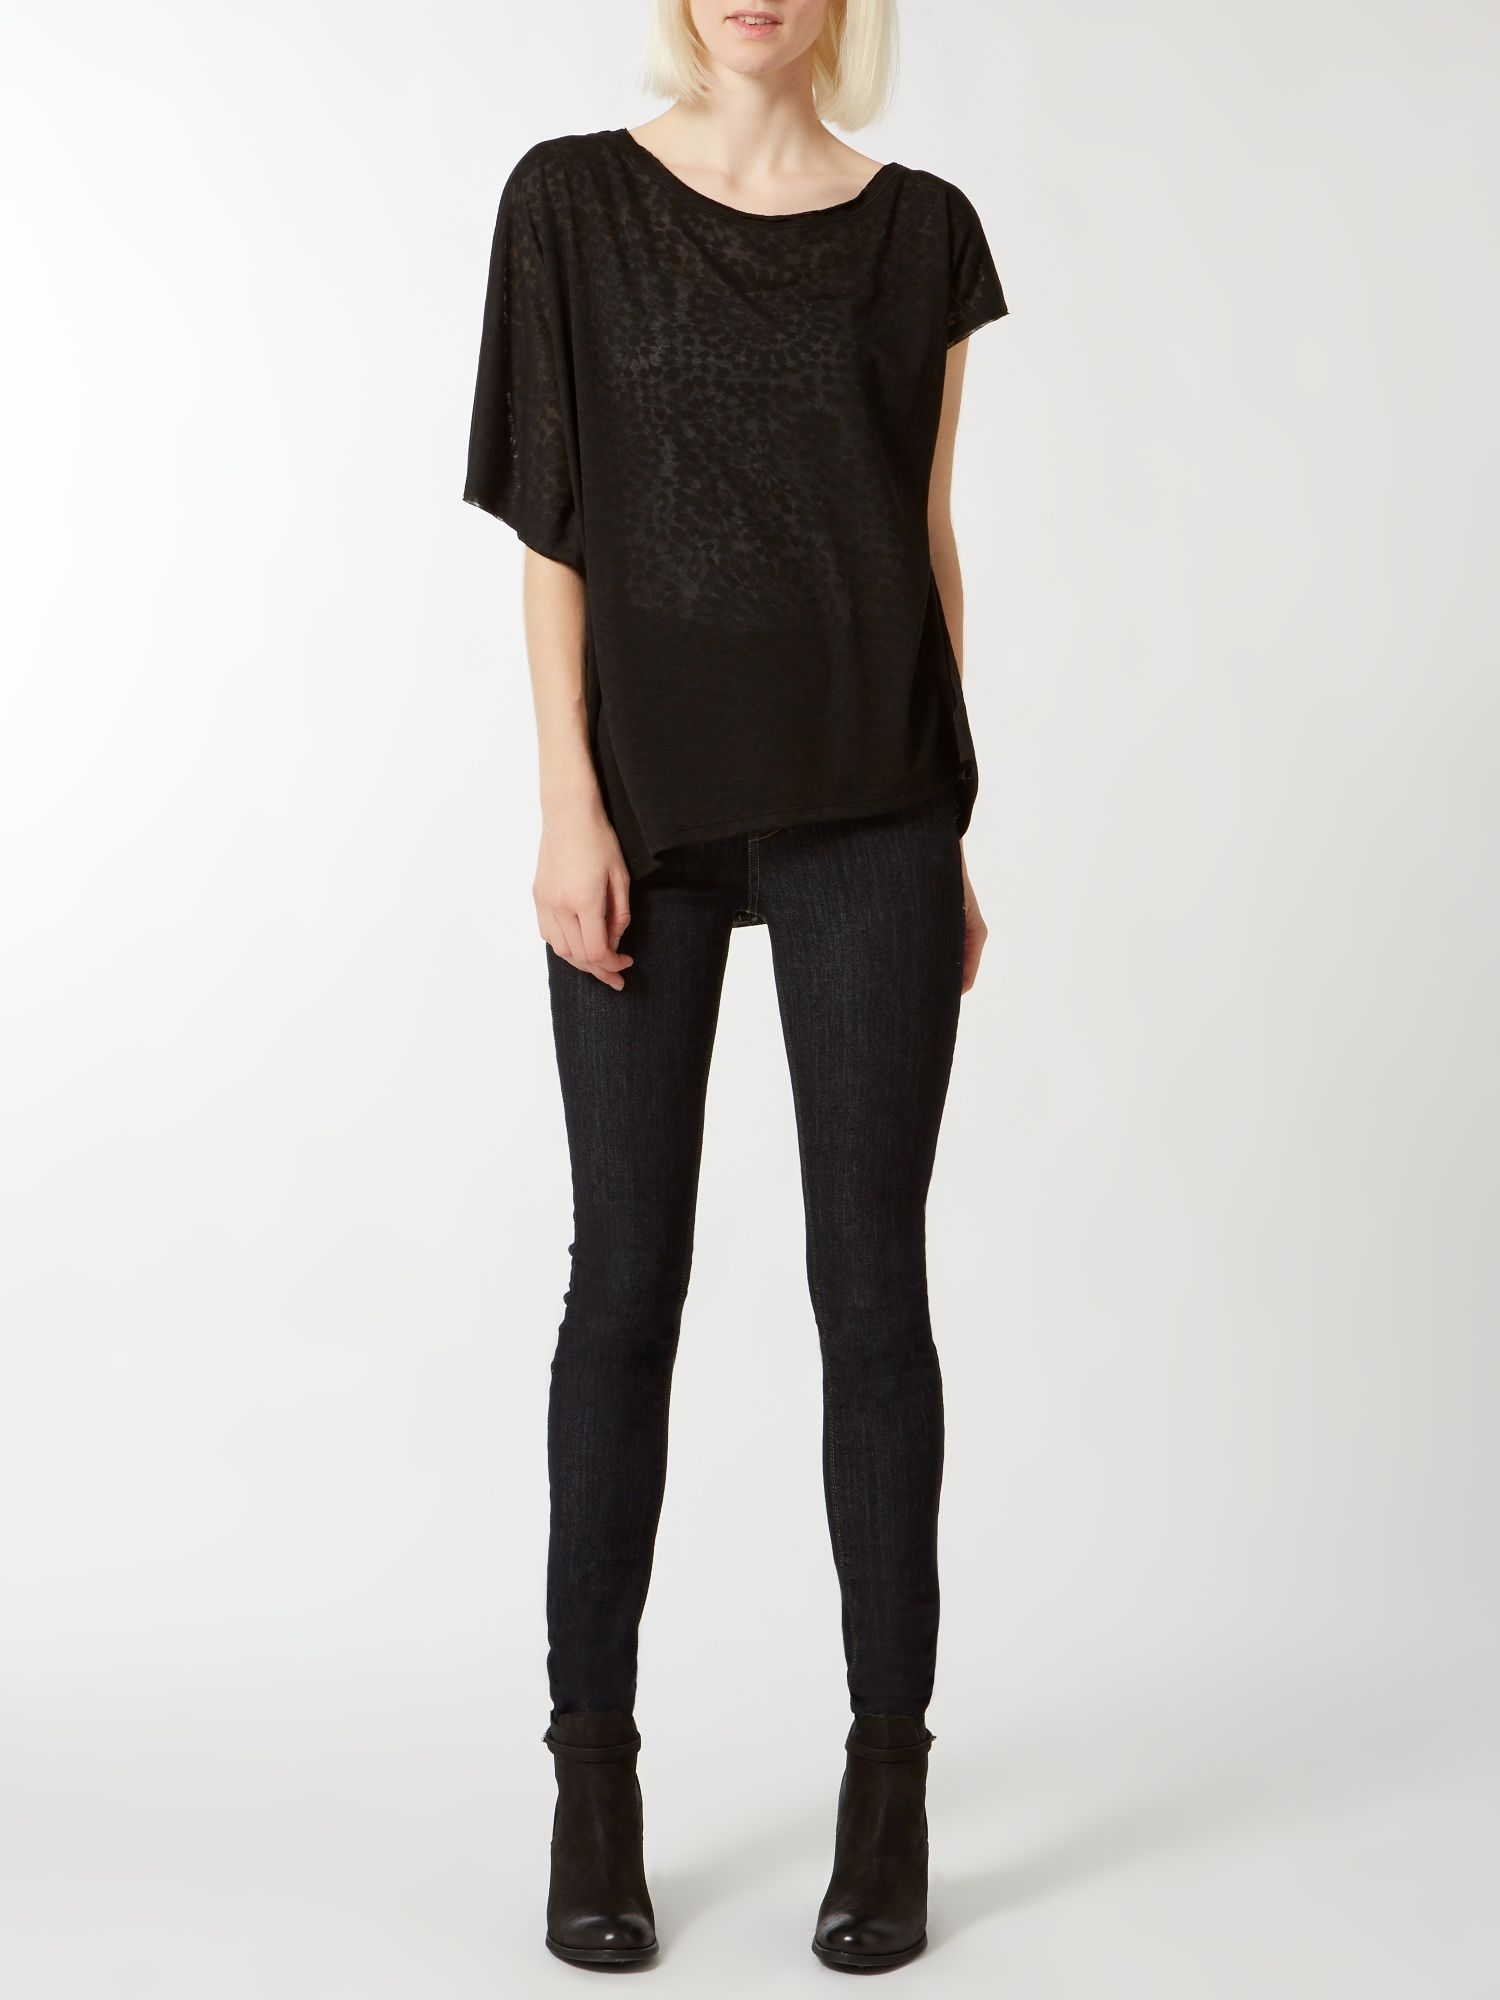 Tile burnout oversized asymmetric tee